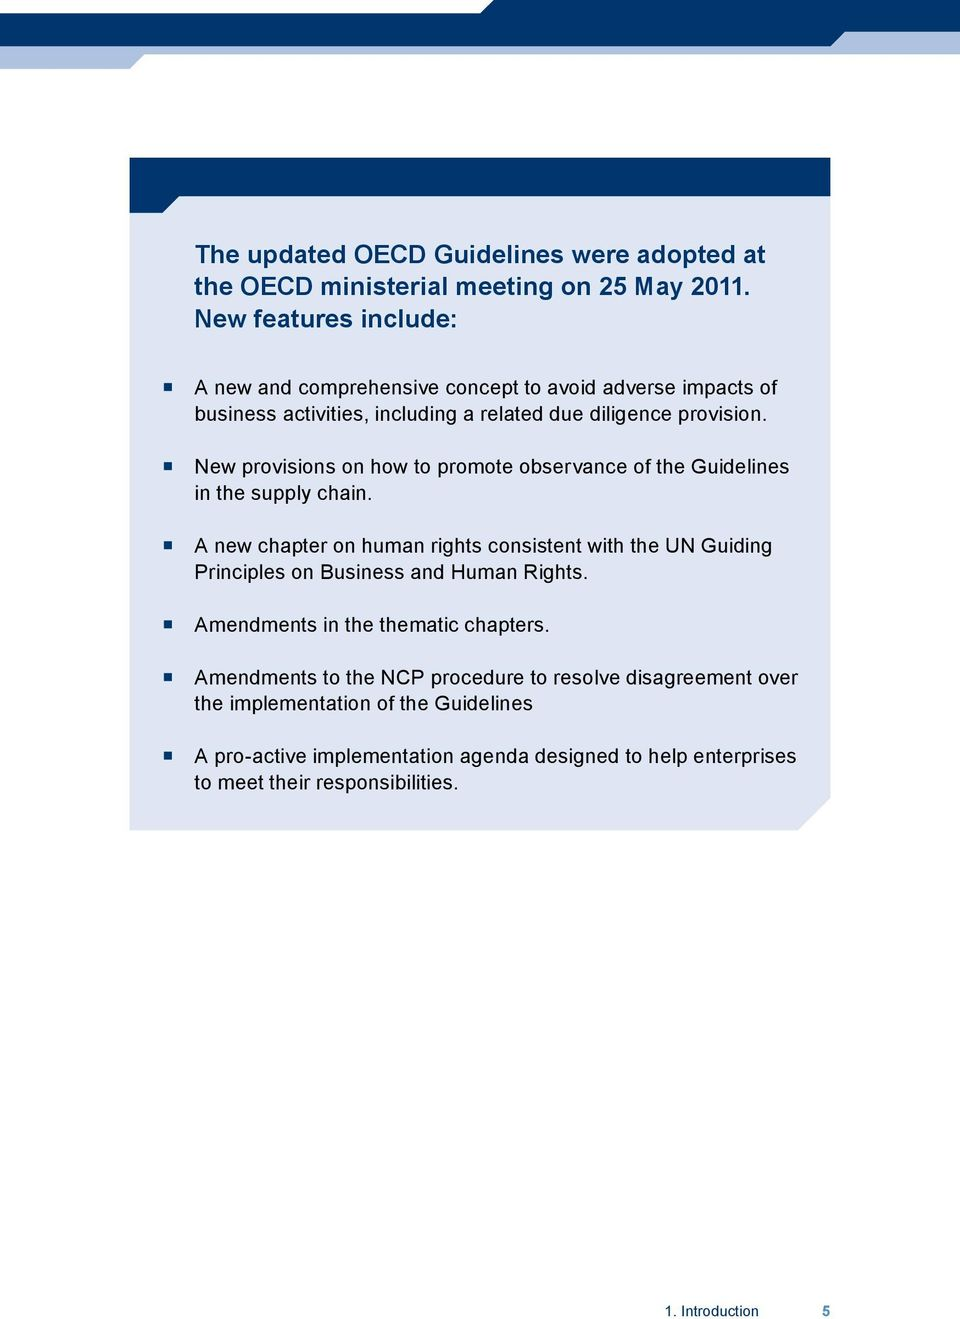 New provisions on how to promote observance of the Guidelines in the supply chain.